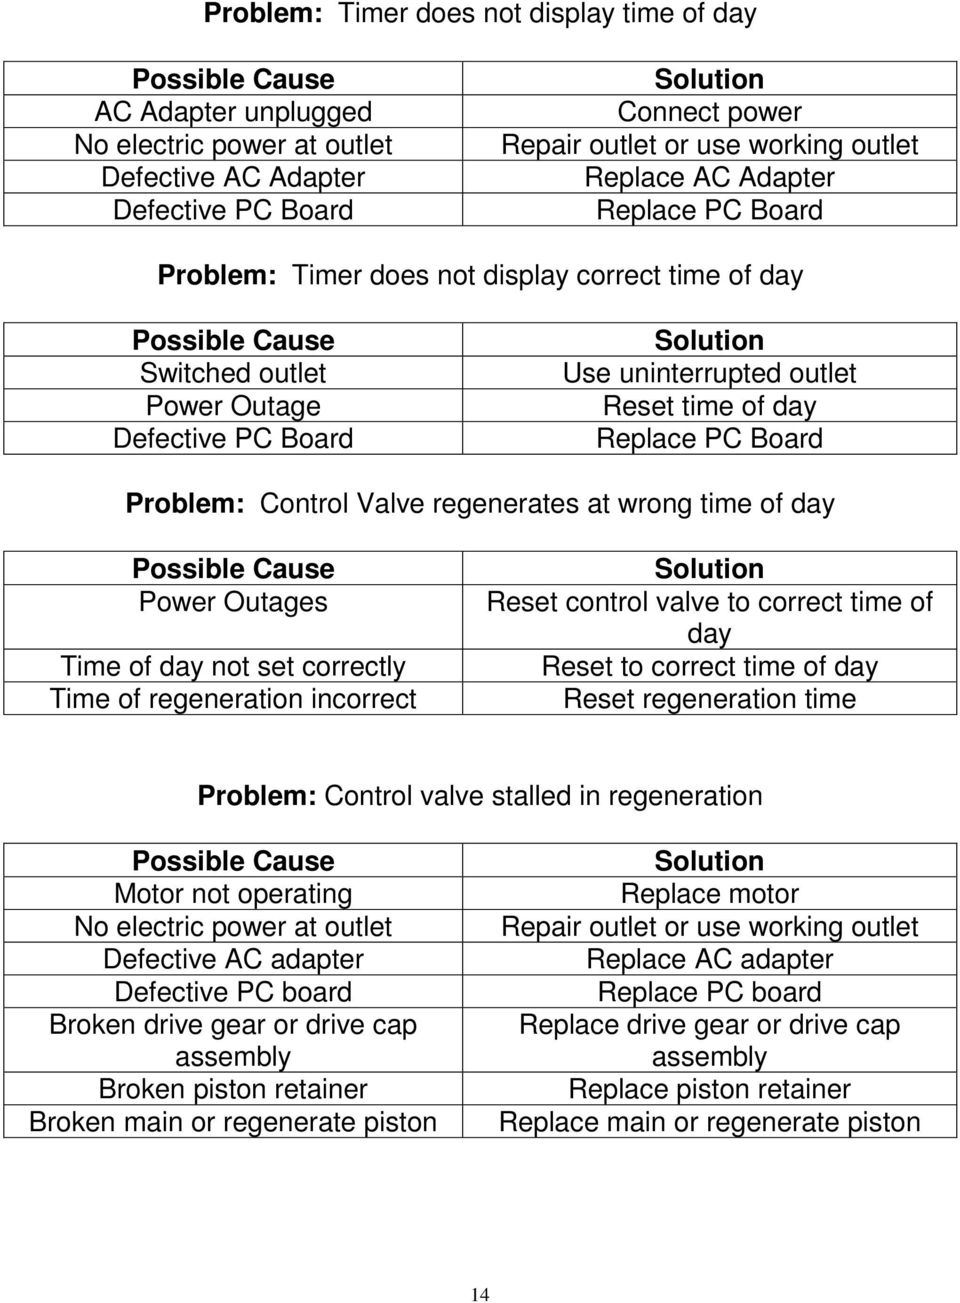 Control Valve regenerates at wrong time of day Power Outages Time of day not set correctly Time of regeneration incorrect Reset control valve to correct time of day Reset to correct time of day Reset